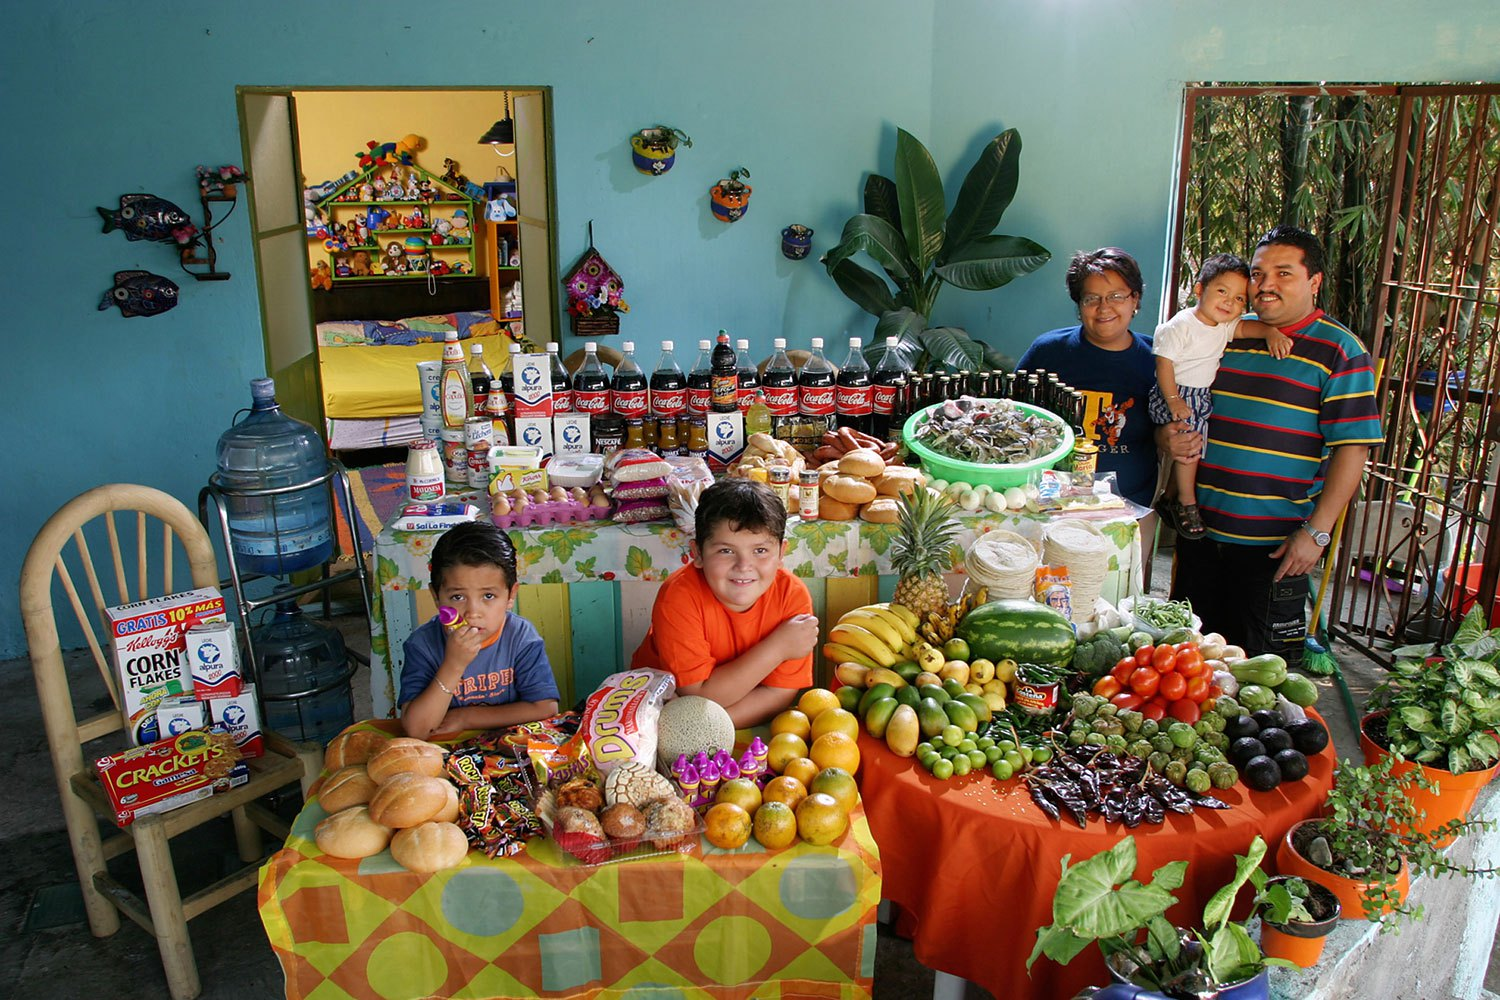 Mexico: The Casales family of Cuernavaca.                                                              Food expenditure for one week: 1,862.78 Mexican Pesos or $189.09.                               Favorite foods: pizza, crab, pasta, chicken.